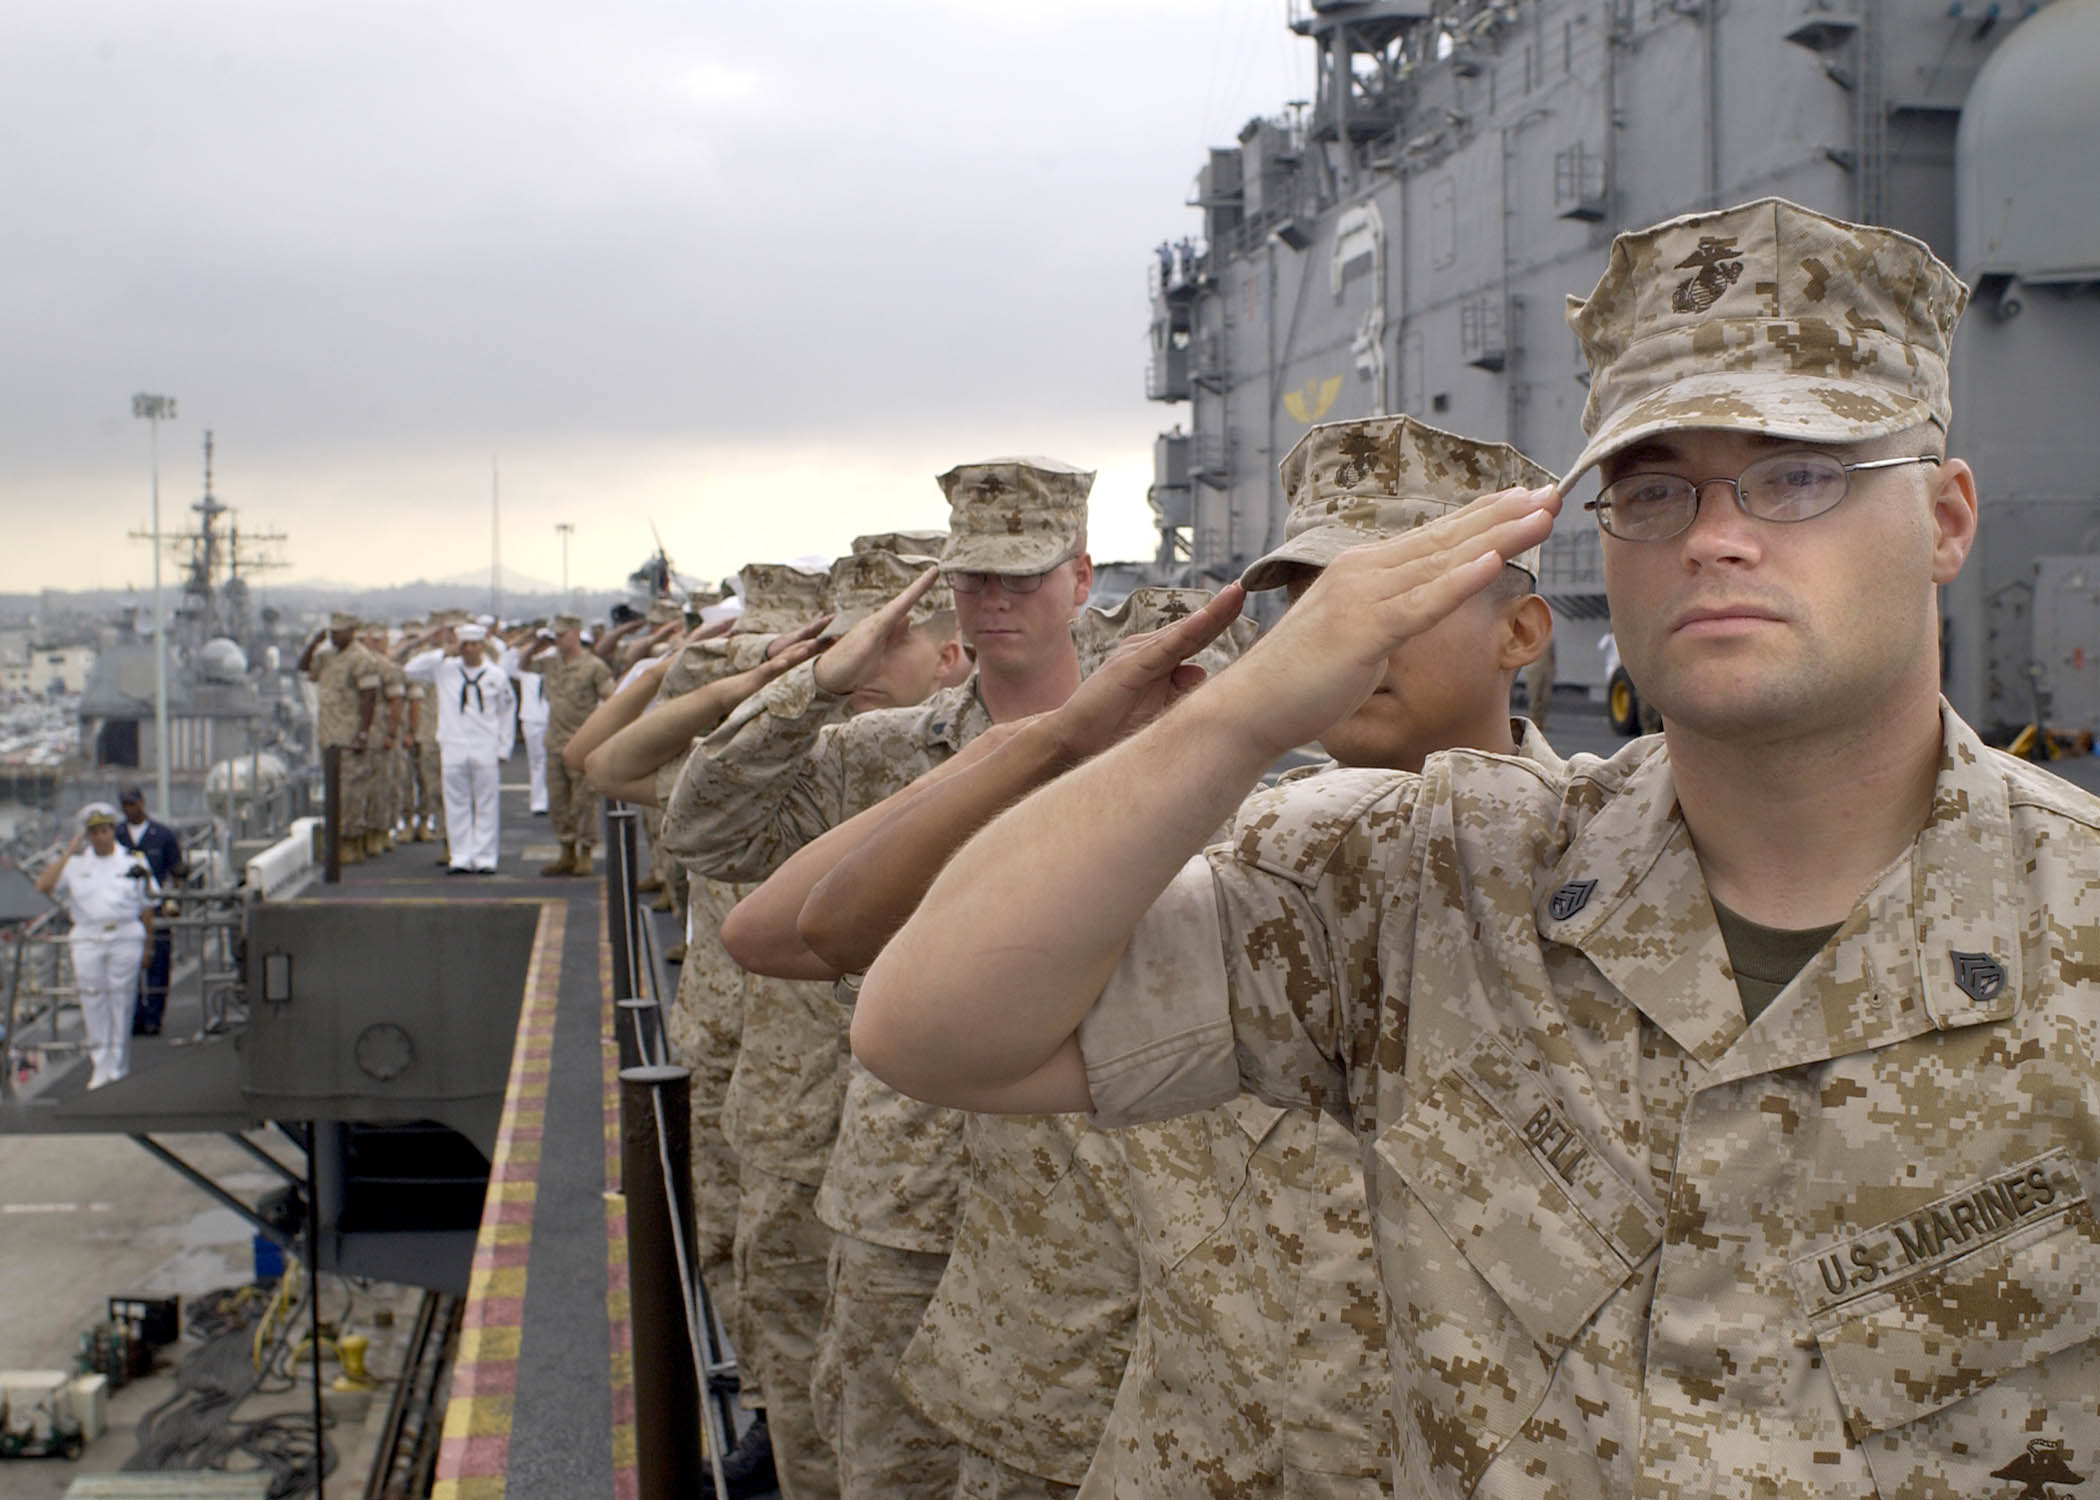 File:US Navy 040527-N-8859S-007 Marines and Sailors salute ...